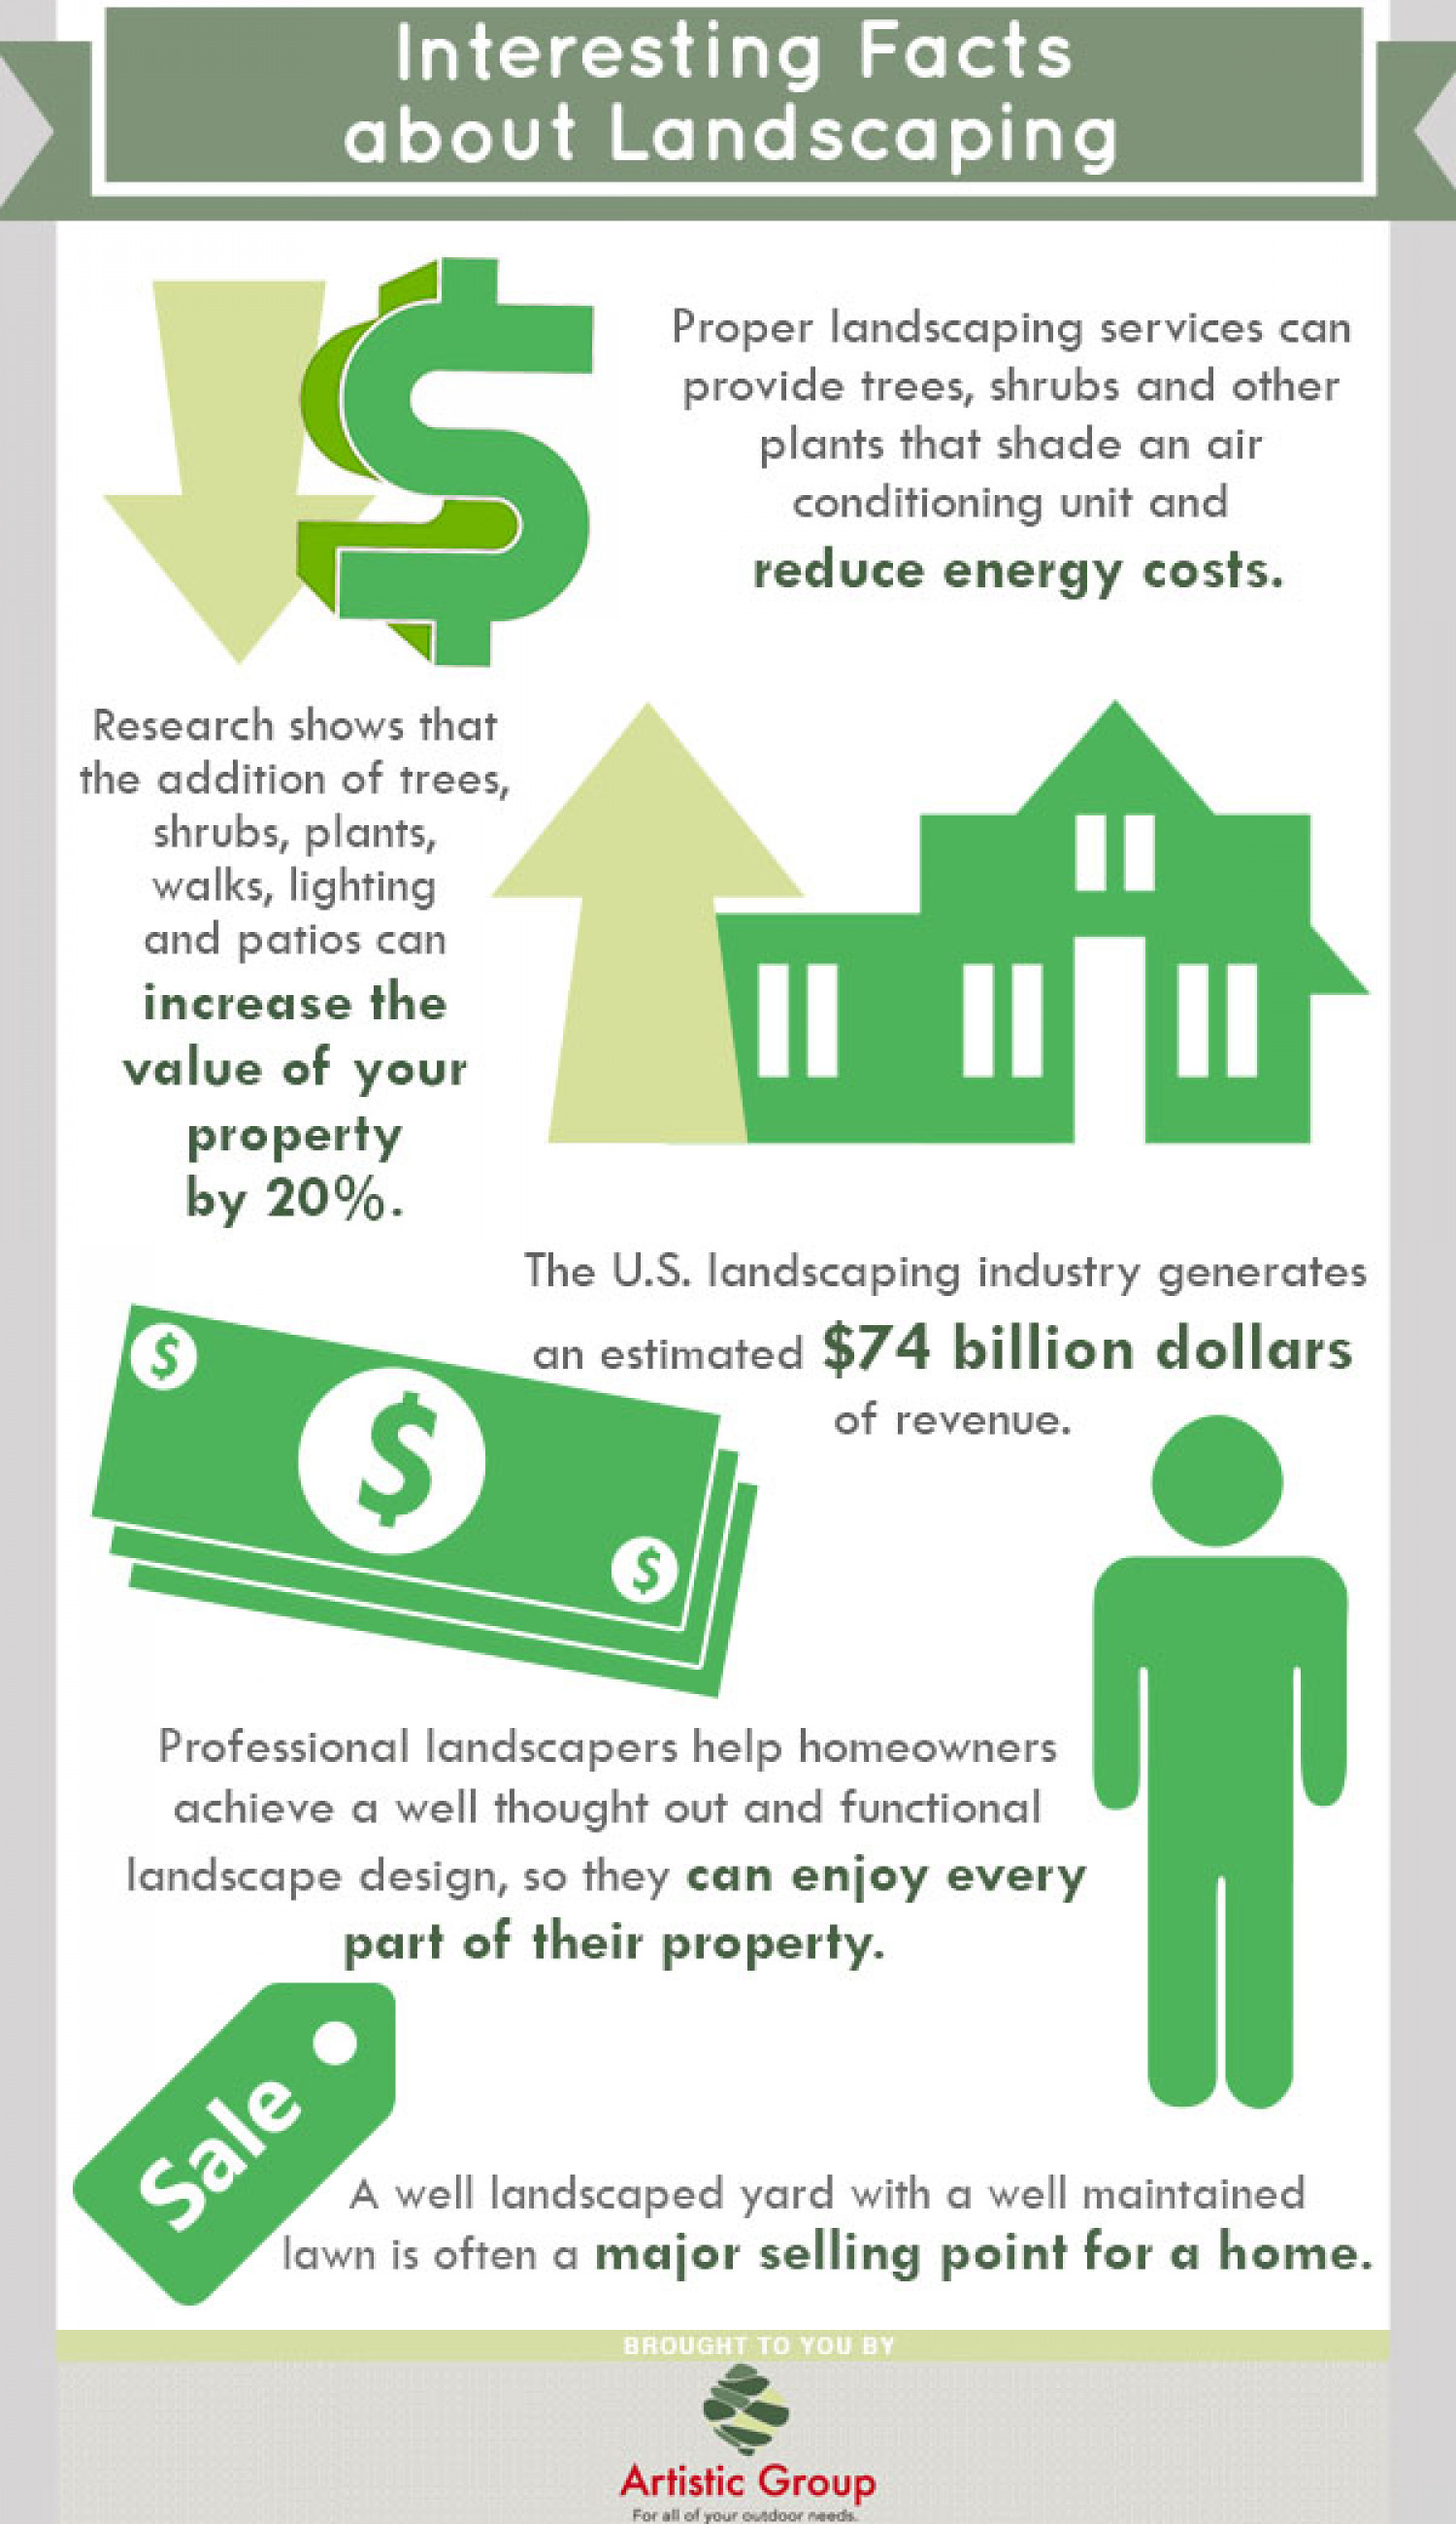 Interesting Facts about Landscaping Infographic